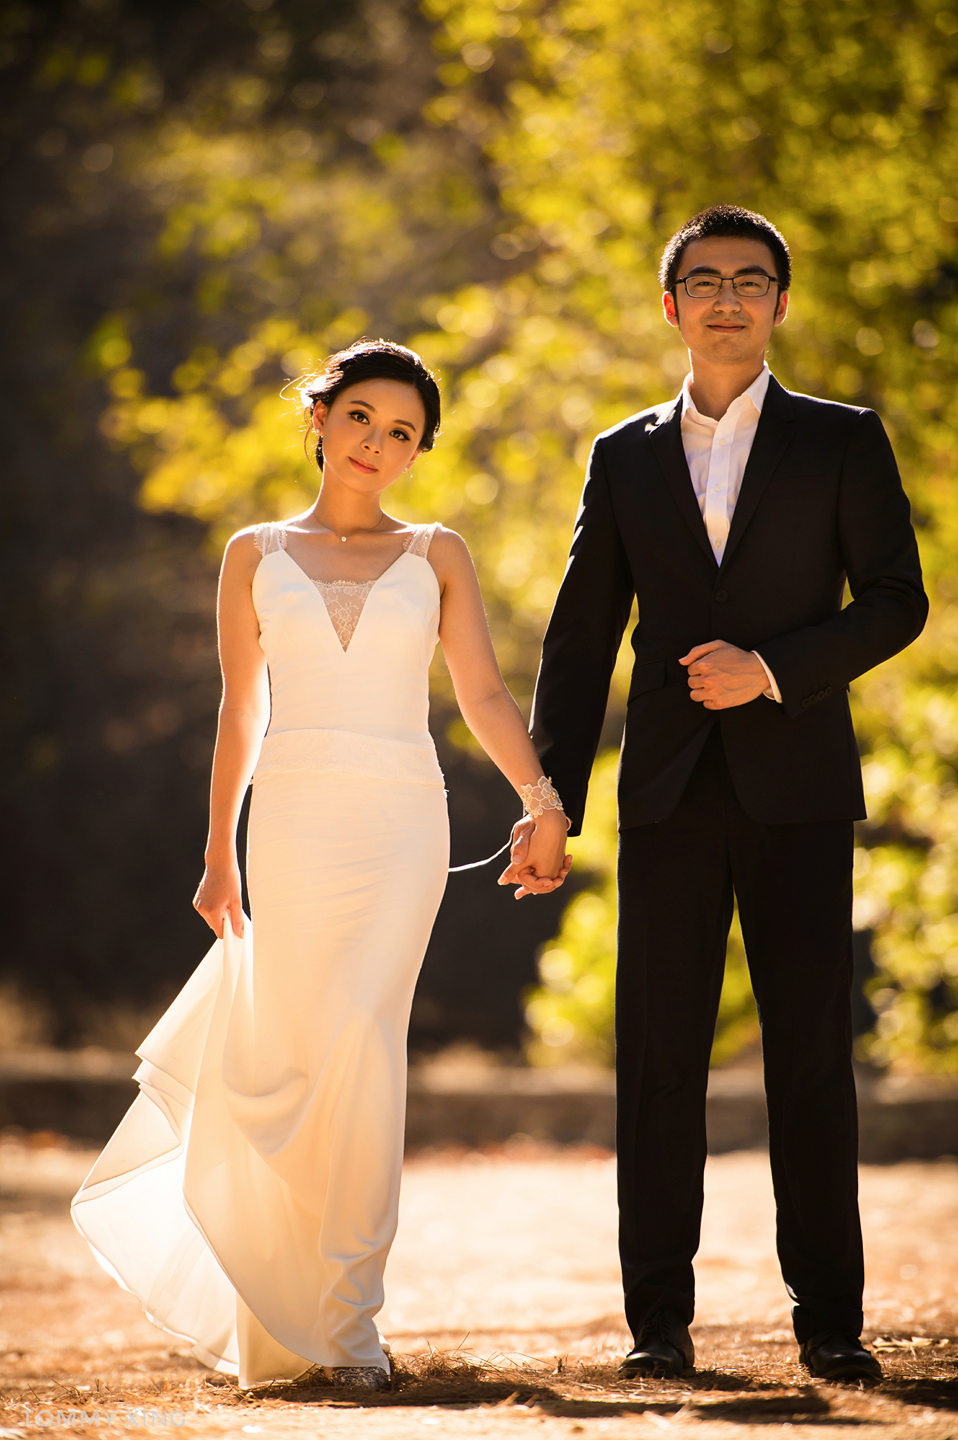 Los Angeles per-wedding 洛杉矶婚纱照 by Tommy Xing Photography 05.jpg